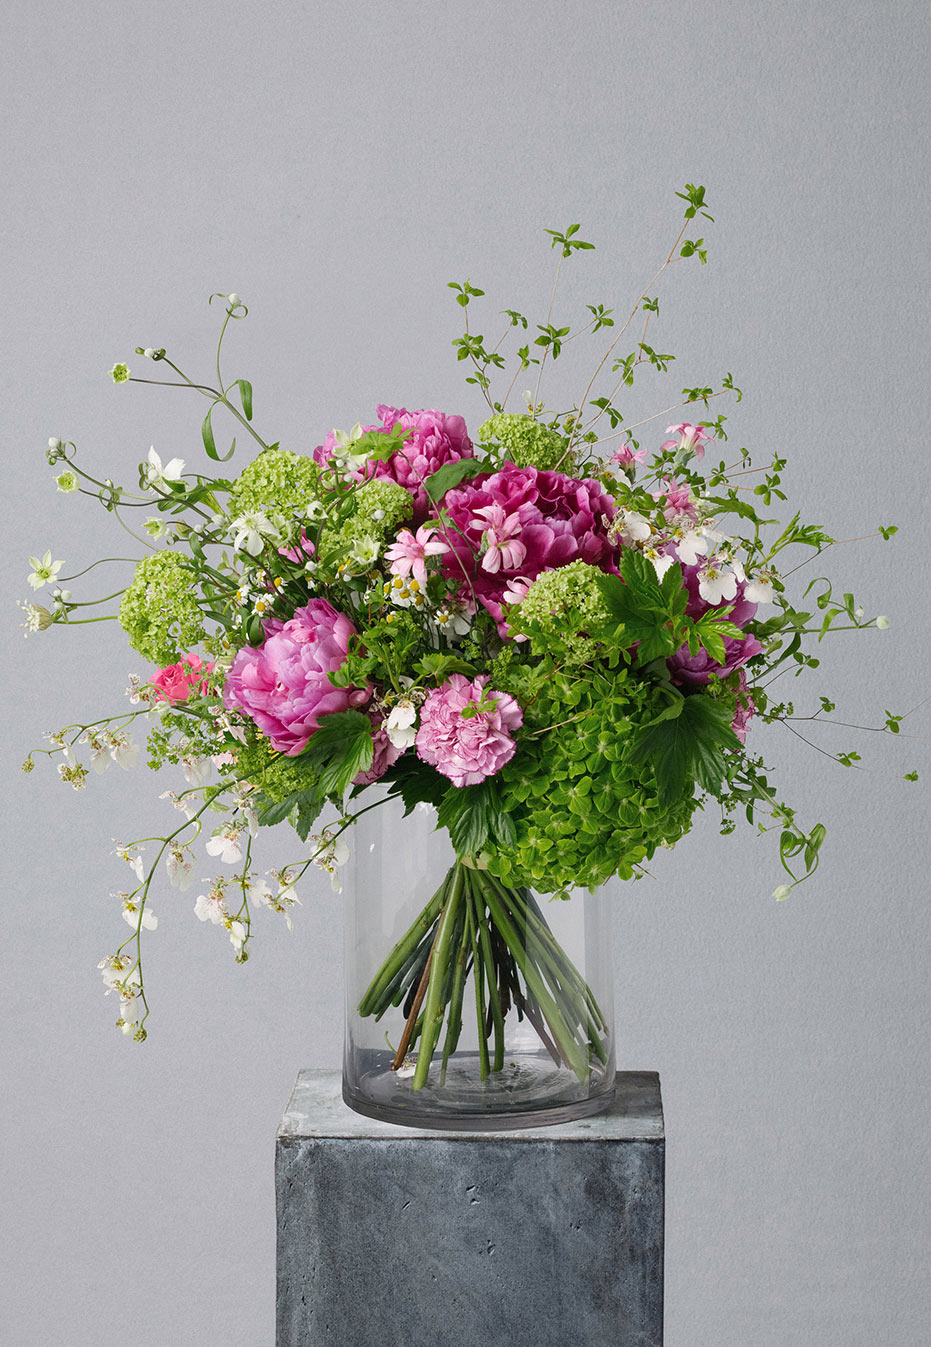 flower bouquet of peony and clematis by flannel flowers